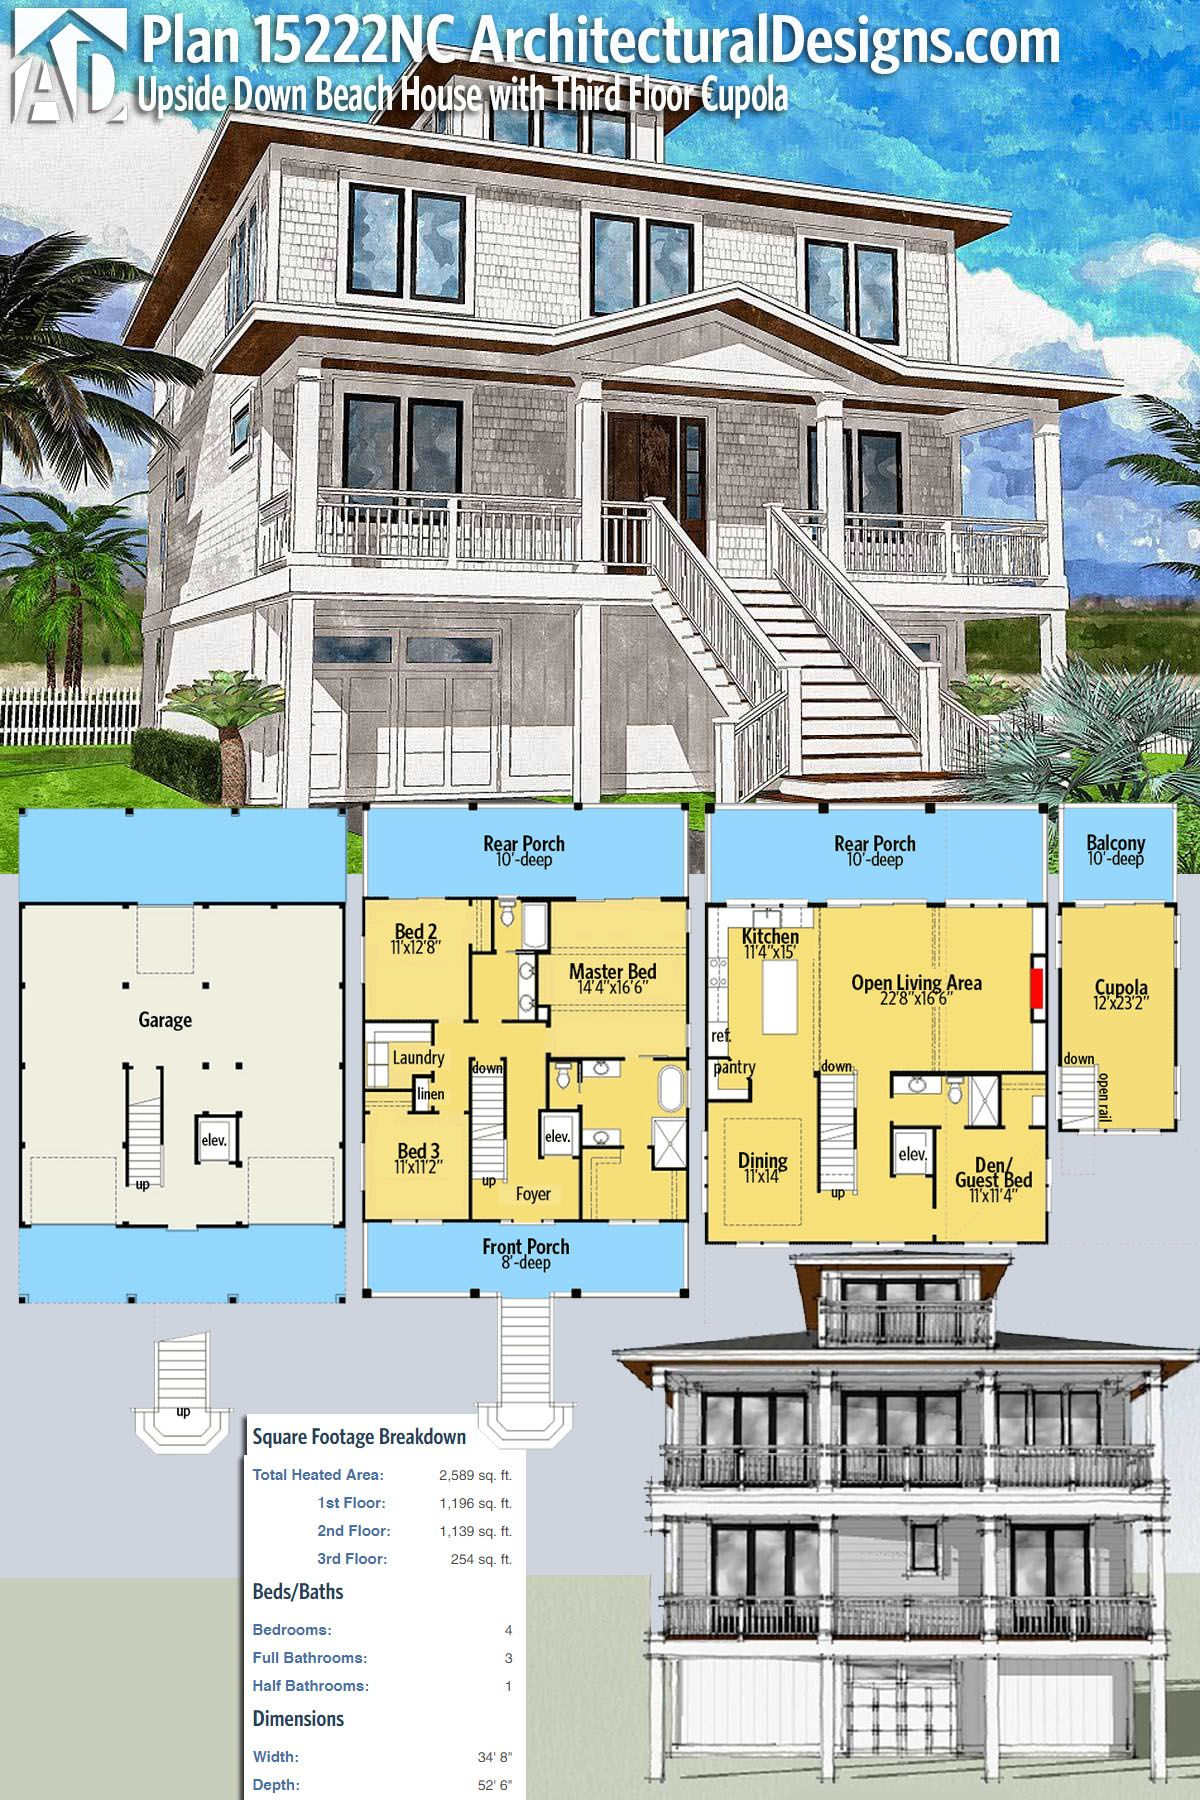 Plan 15222nc Upside Down Beach House With Third Floor Cupola Coastal House Plans Beach House Floor Plans Vacation House Plans